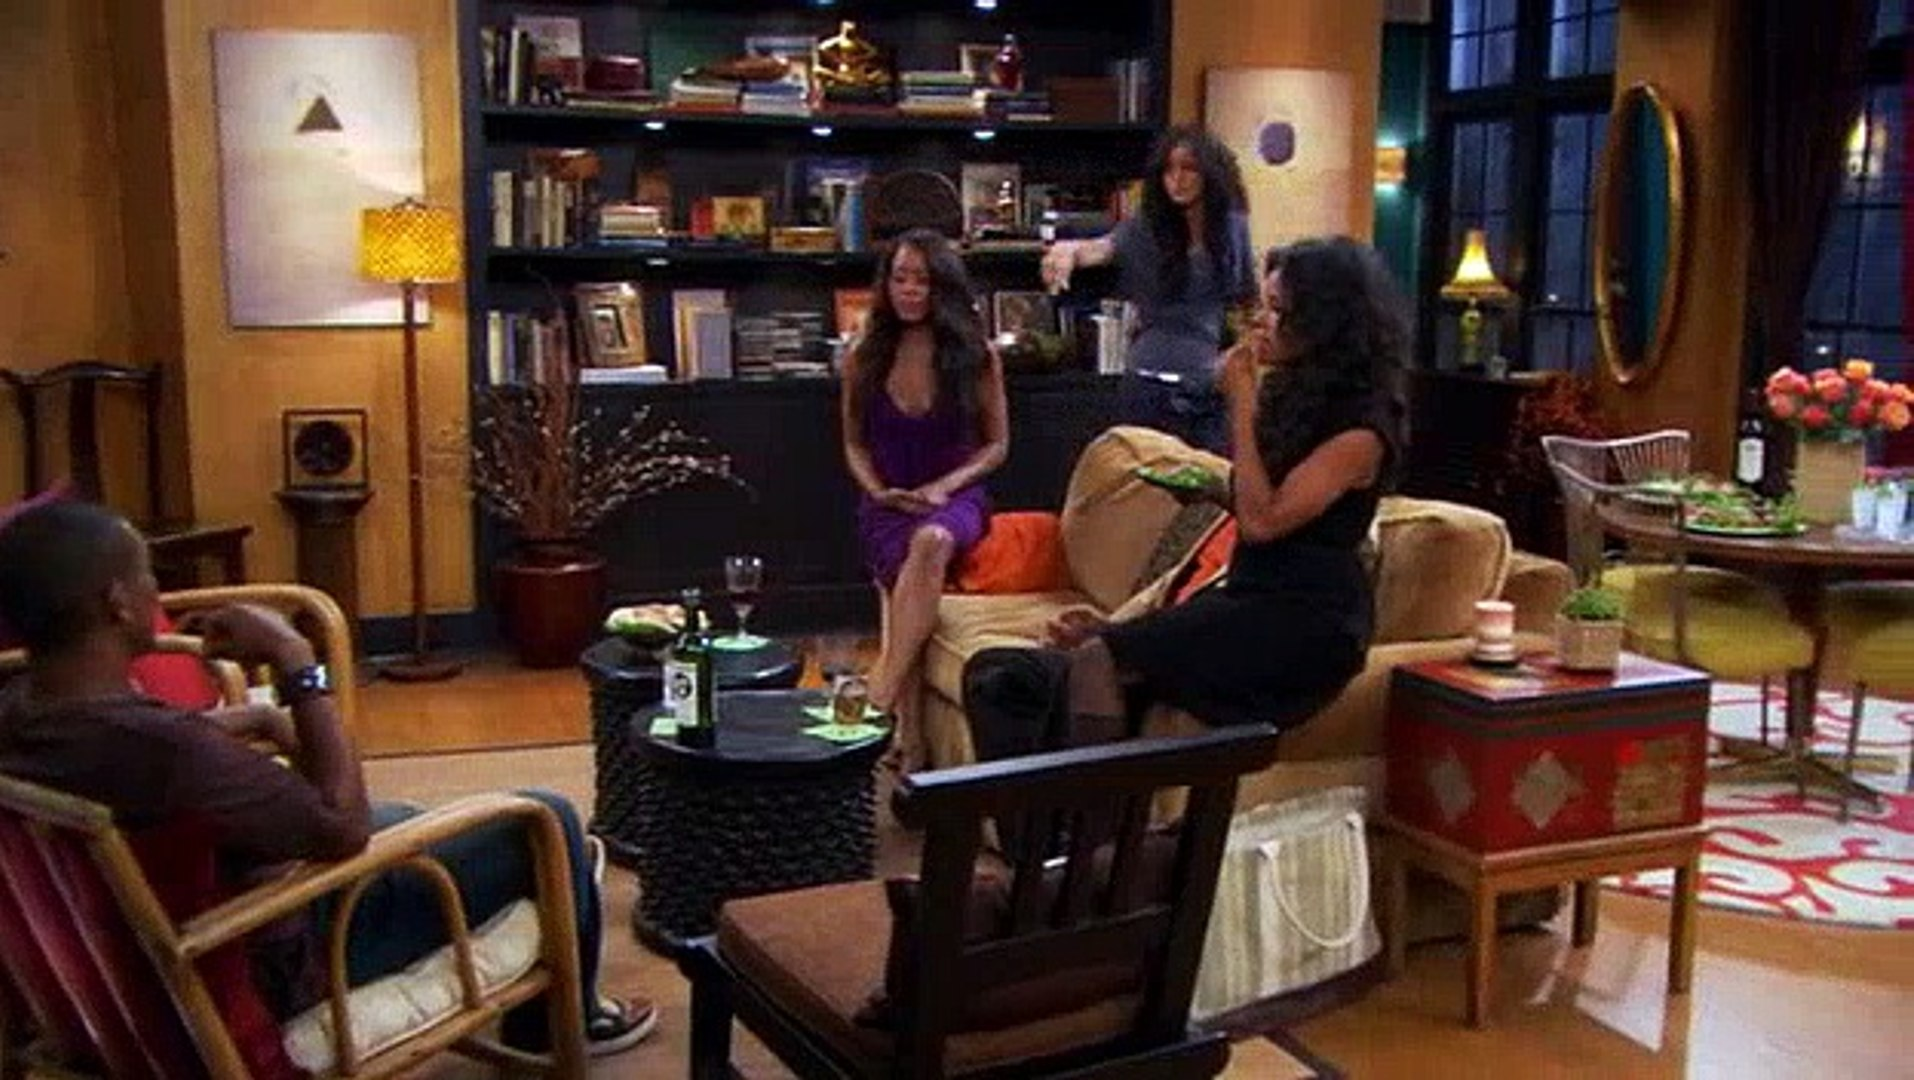 Girlfriends S08 E09 R E S P E C T Find Out What It Means To William